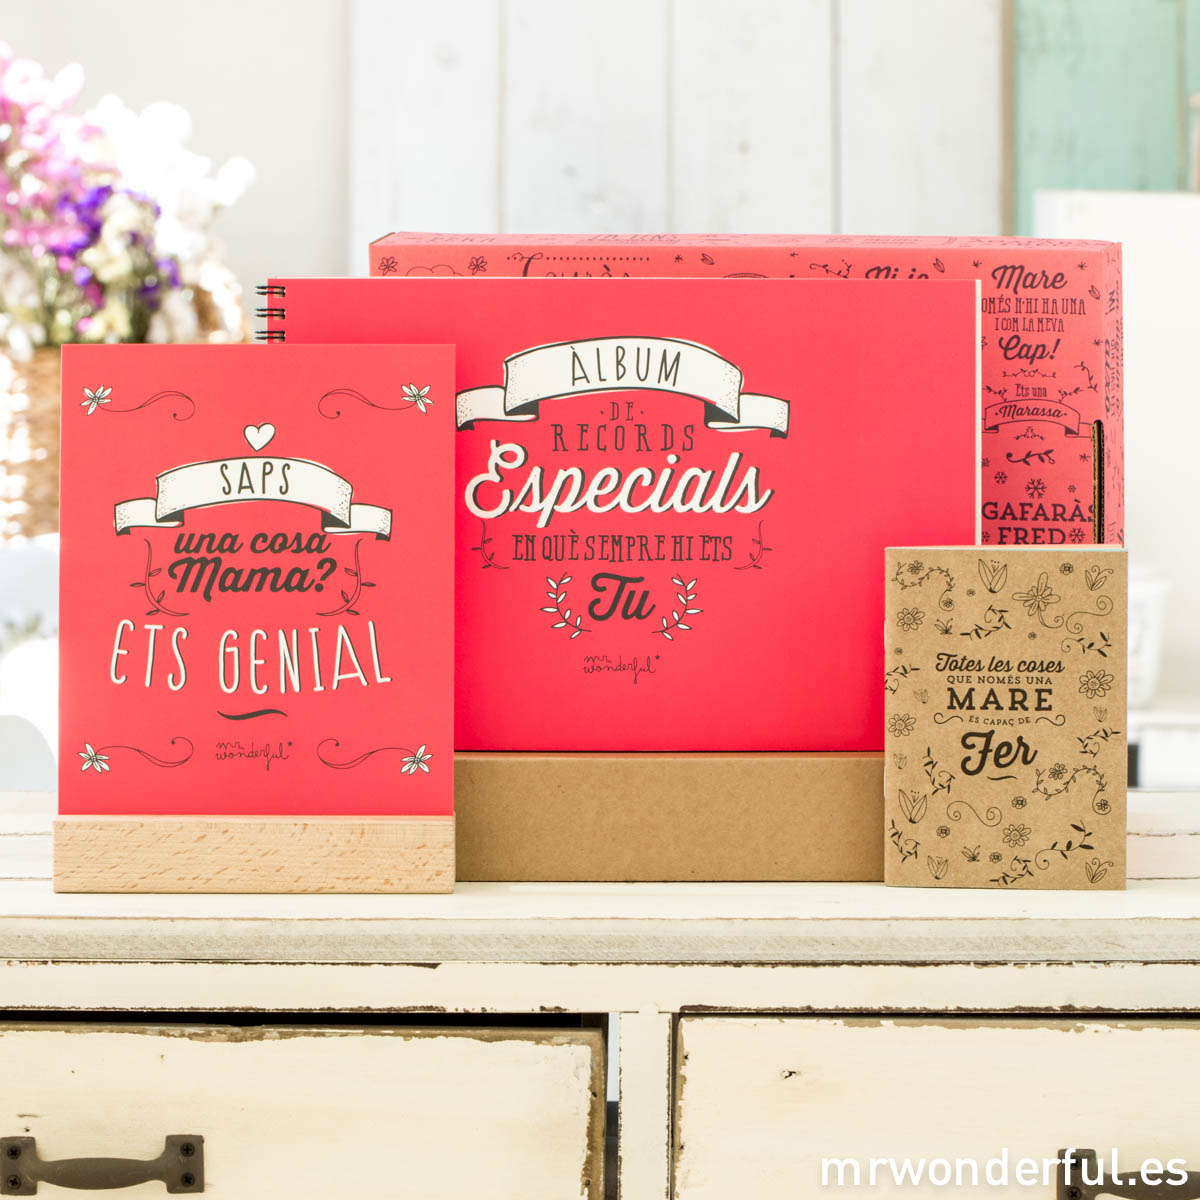 mrwonderful_KITMADRE2-2014-CAT_Kit-dia-de-la-mare-1